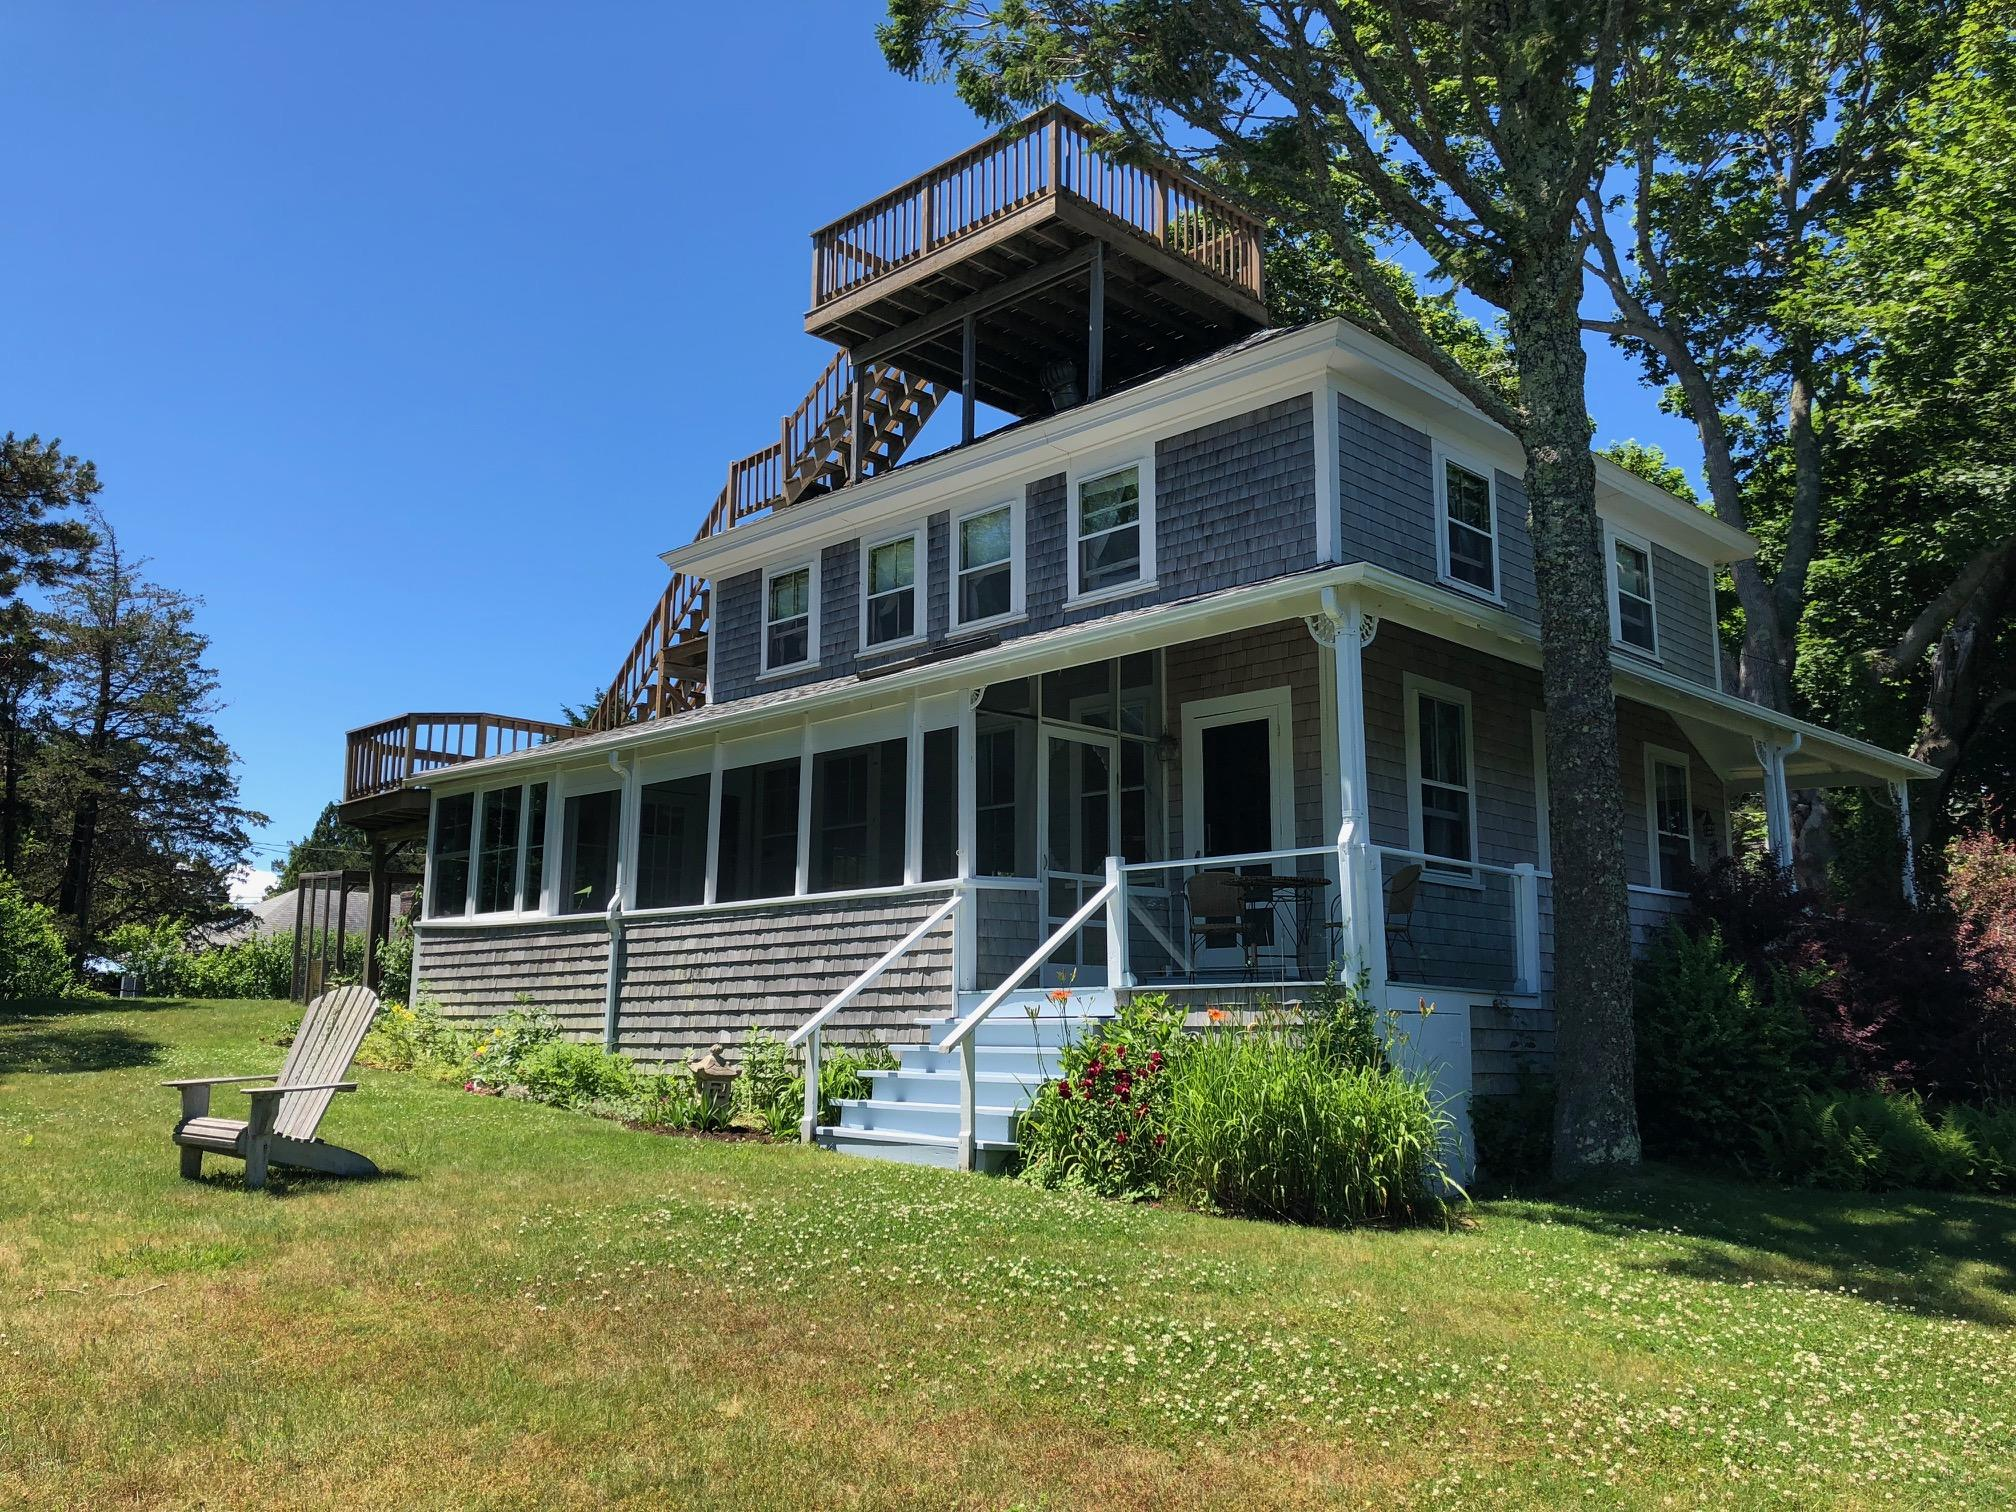 4A Seaview Road, East Orleans MA, 02643